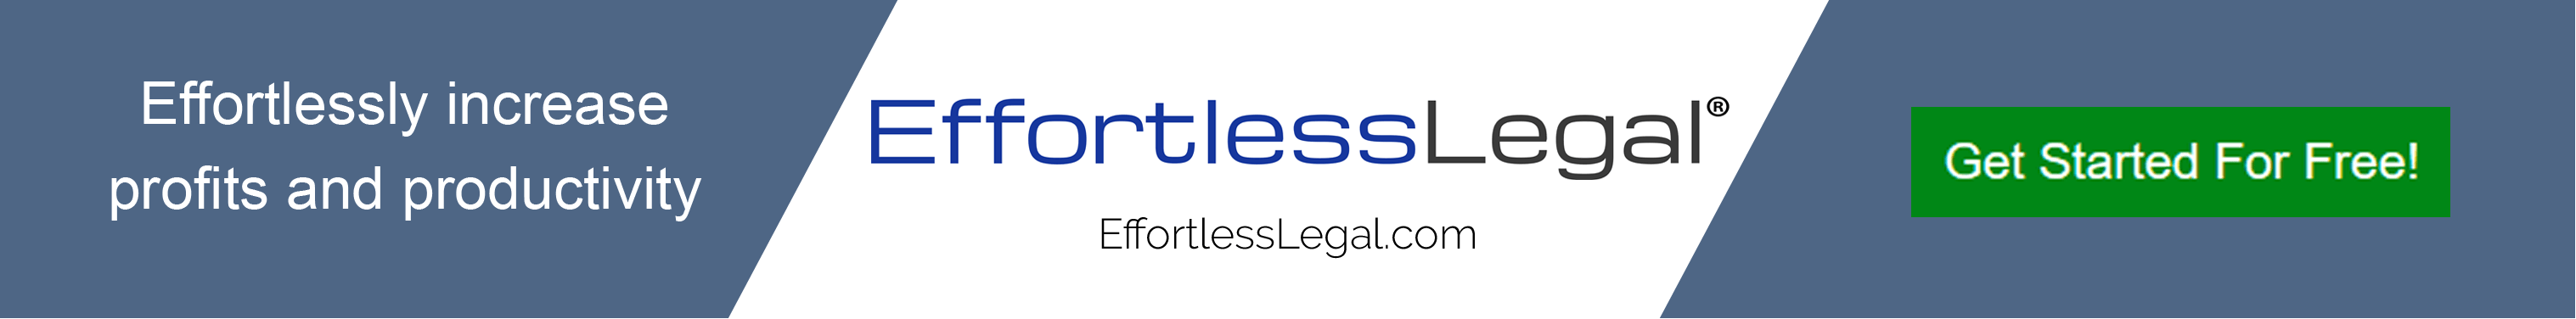 Optimize Profits Per Partner with Online Legal Software in the Cloud - EffortlessLegal